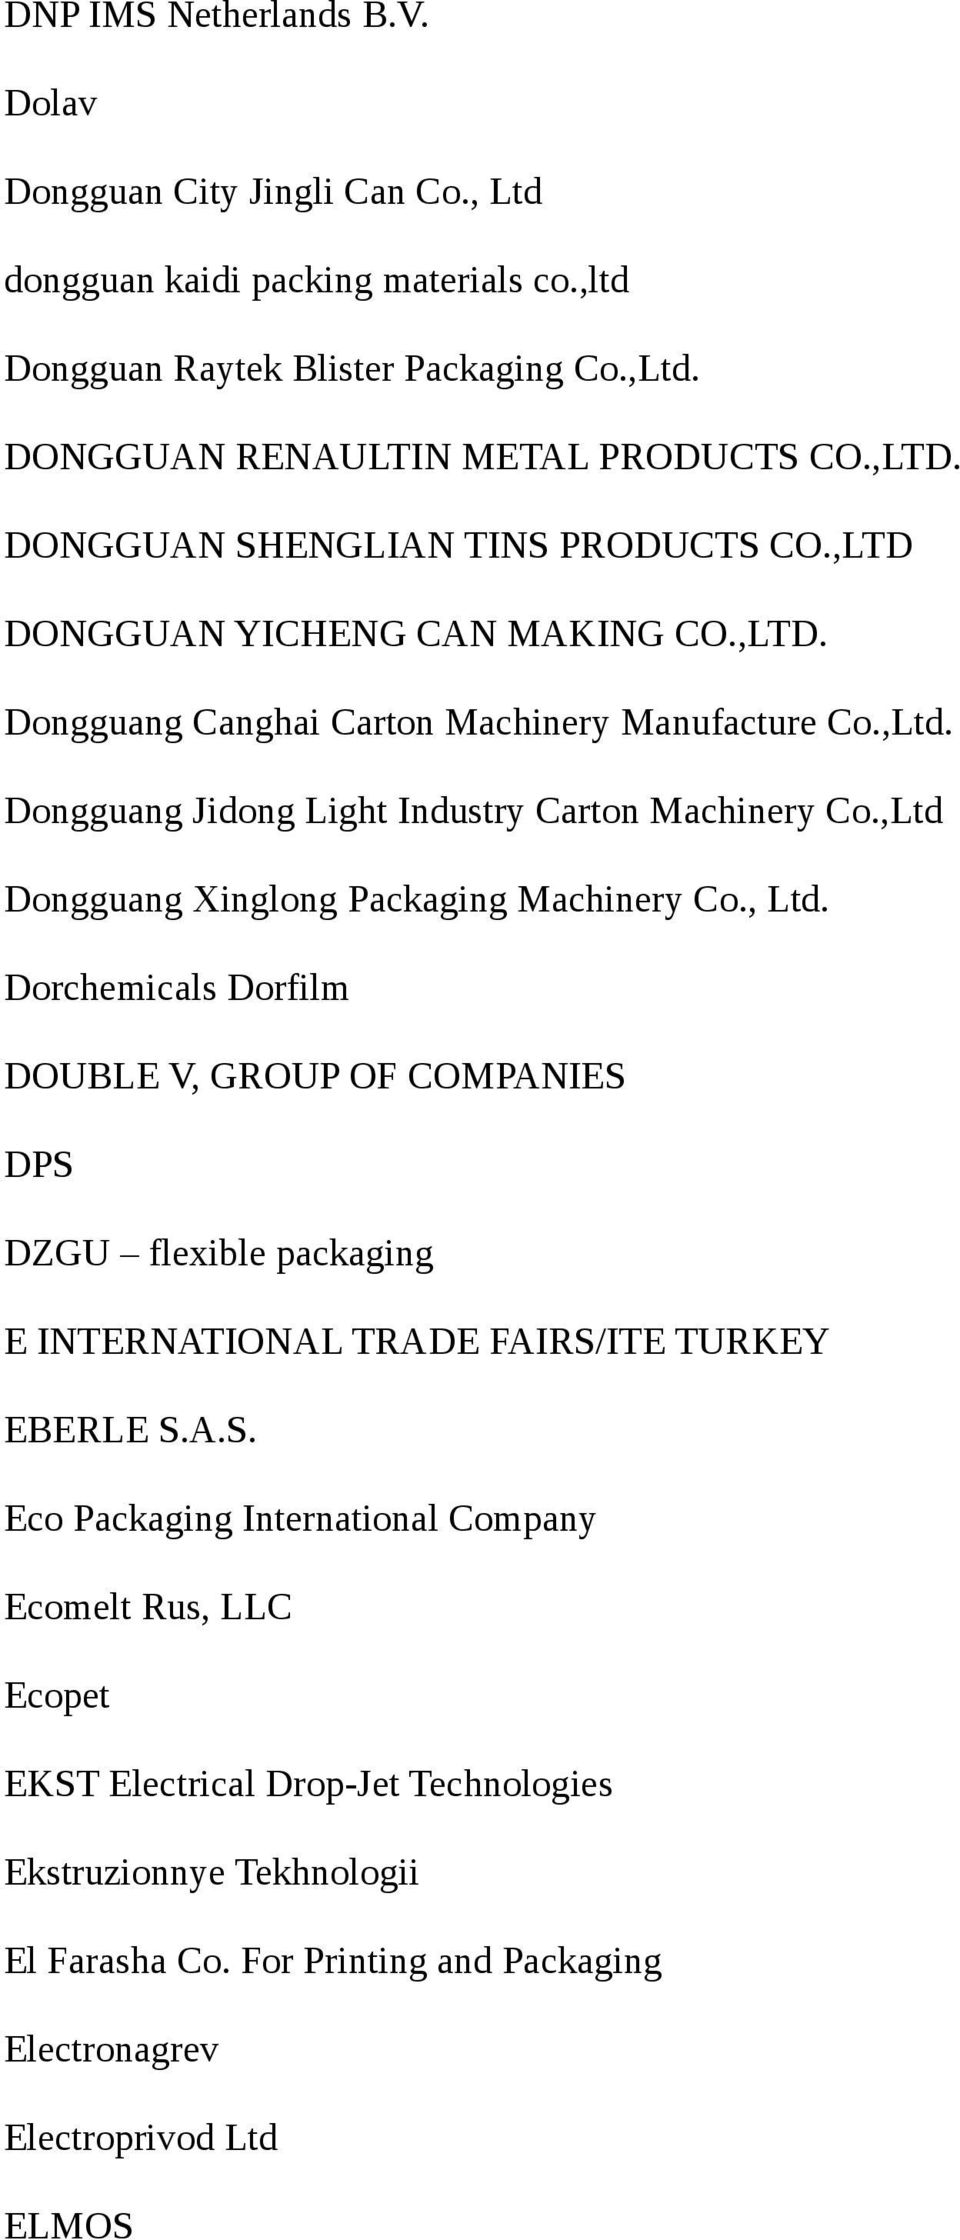 ,Ltd Dongguang Xinglong Packaging Machinery Co., Ltd. Dorchemicals Dorfilm DOUBLE V, GROUP OF COMPANIES